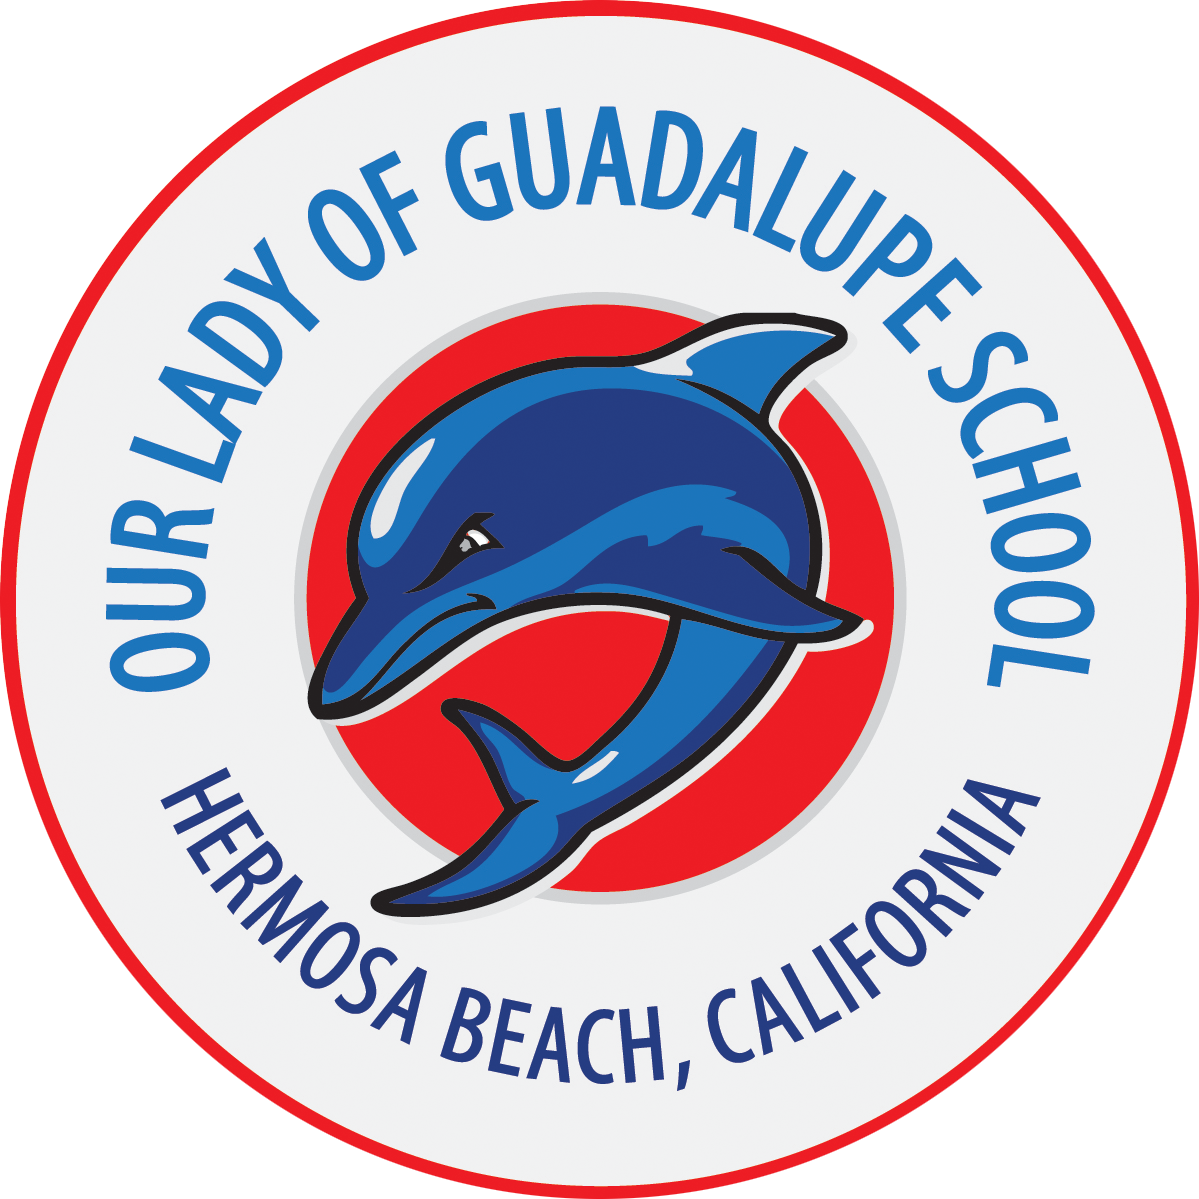 Our Lady of Guadalupe School